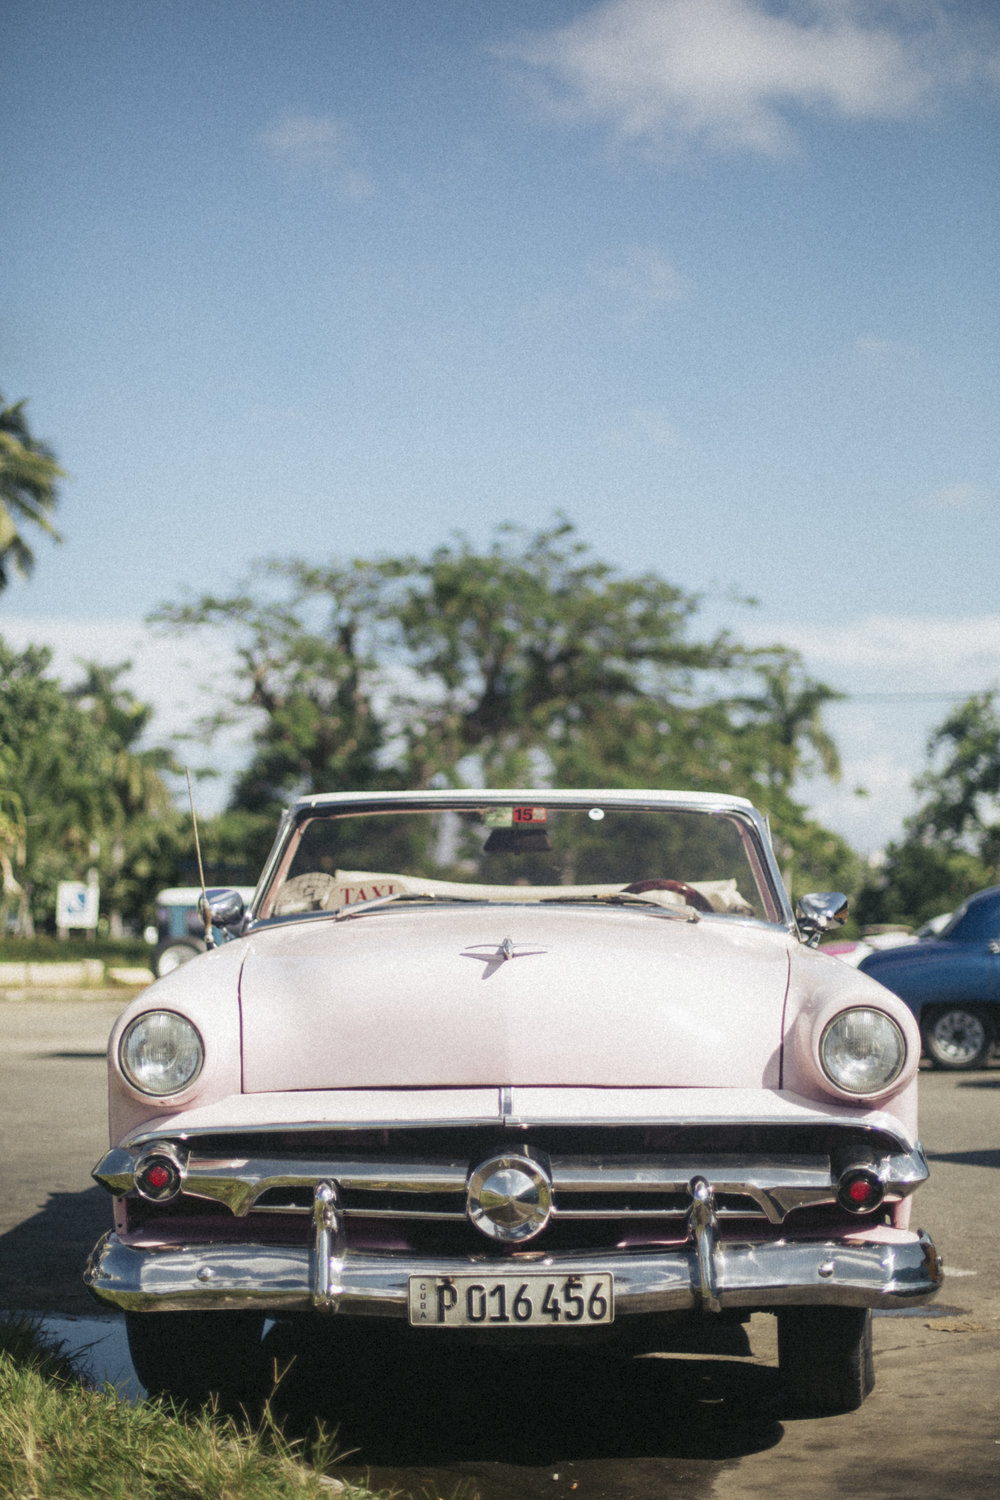 If you don't already know, Havana and Cuba in general is FULL of old cars in mint condition. The people take great pride in their cars and for a lot of them it's how they make their income with the tourists.